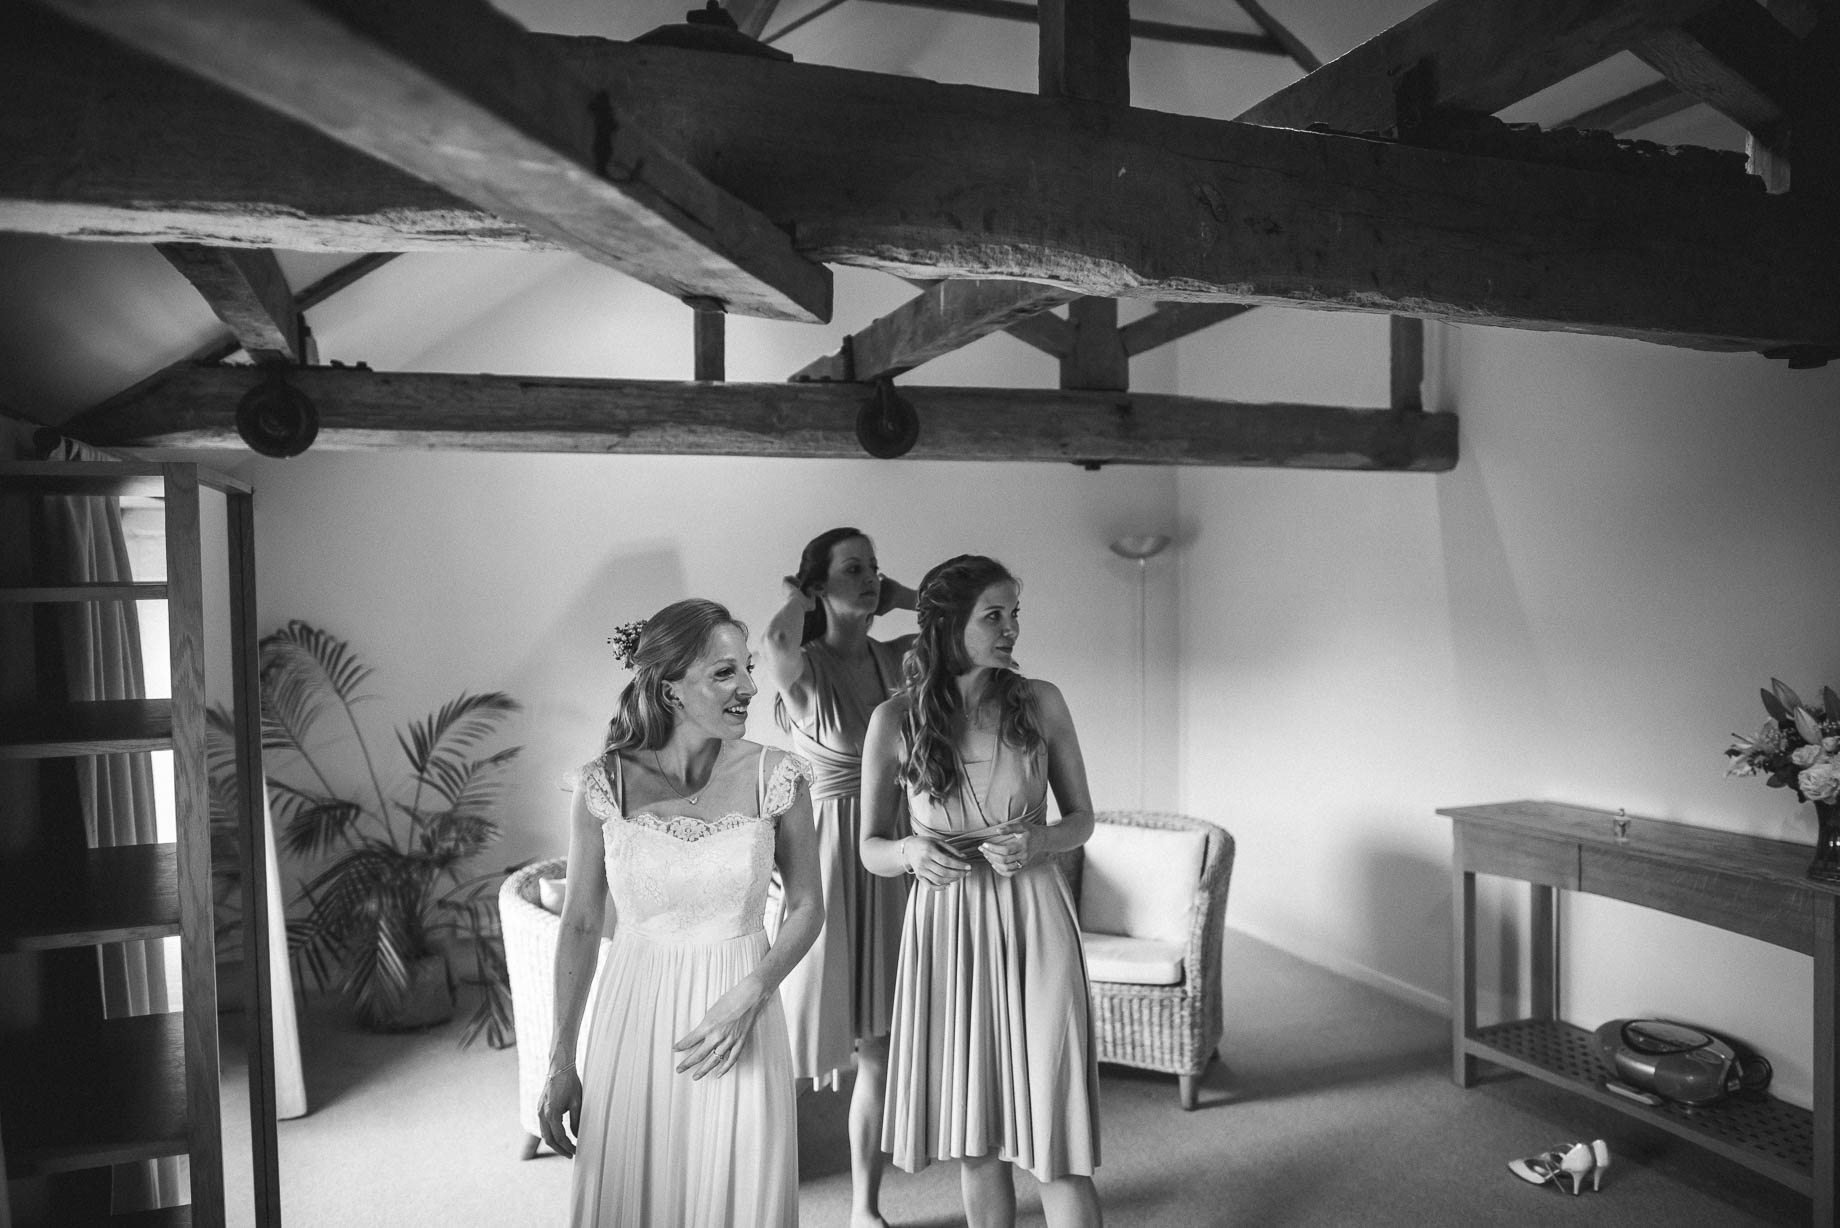 Bury Court Barn wedding photography by Guy Collier - Heather and Pat (14 of 170)